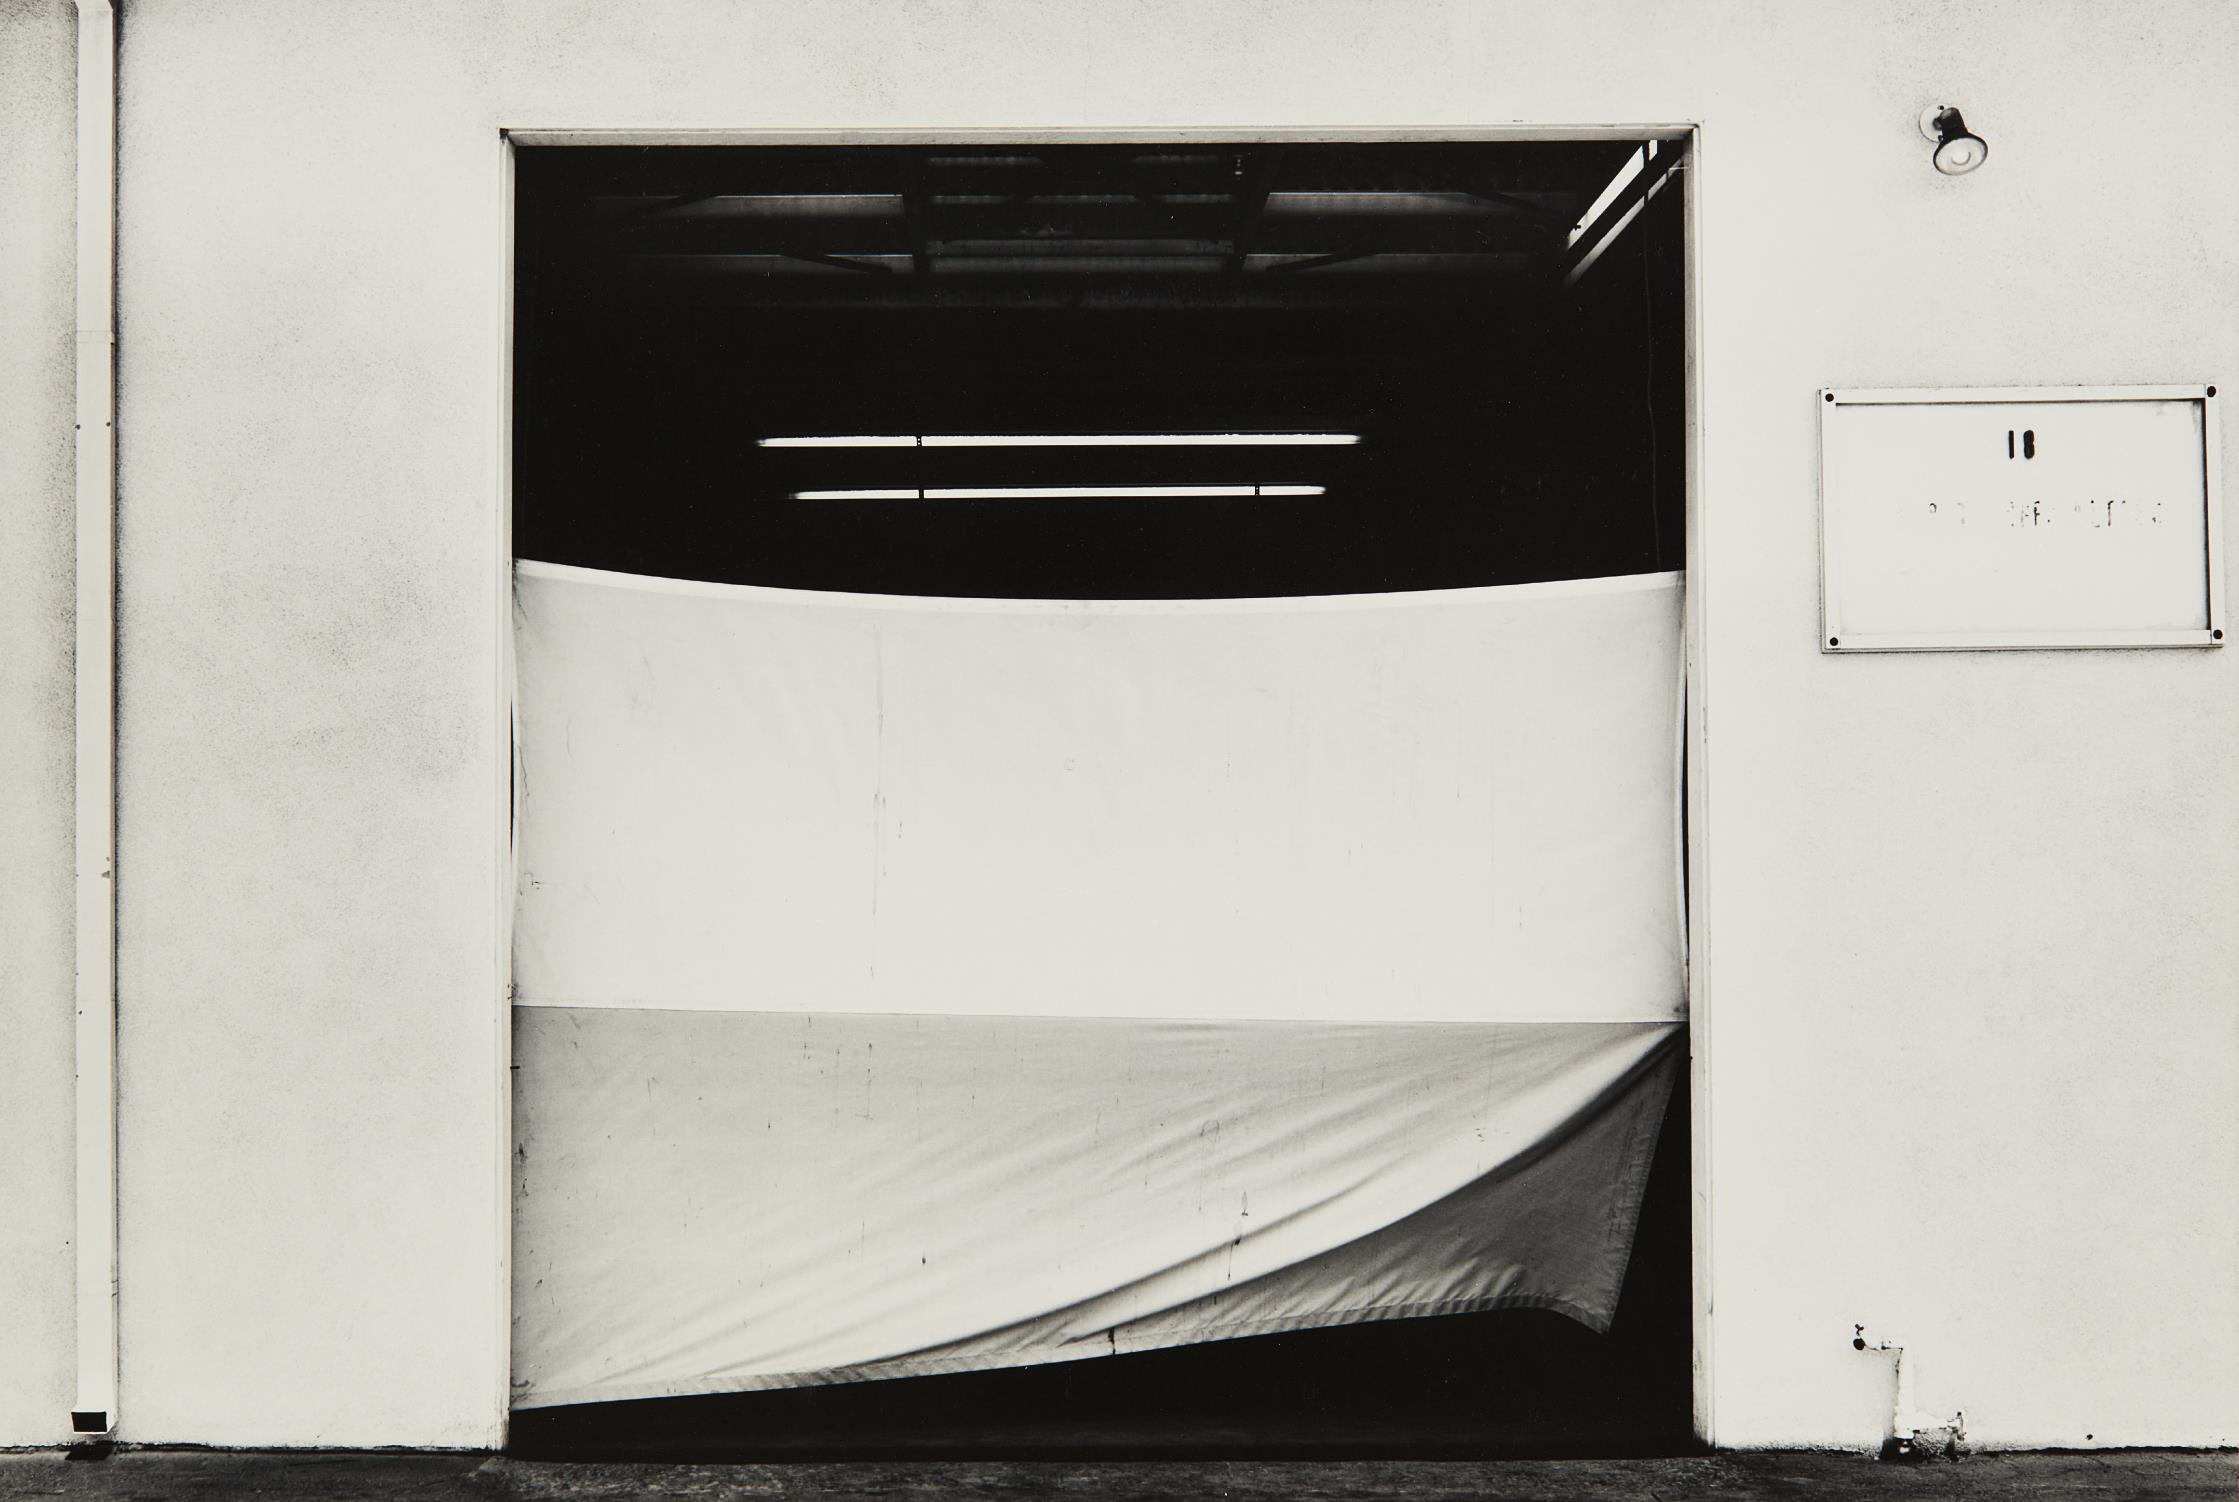 Lewis Baltz-West Wall, Space 18, 817 West 17th Street, Costa Mesa, from The new Industrial Parks near Irvine, California-1974